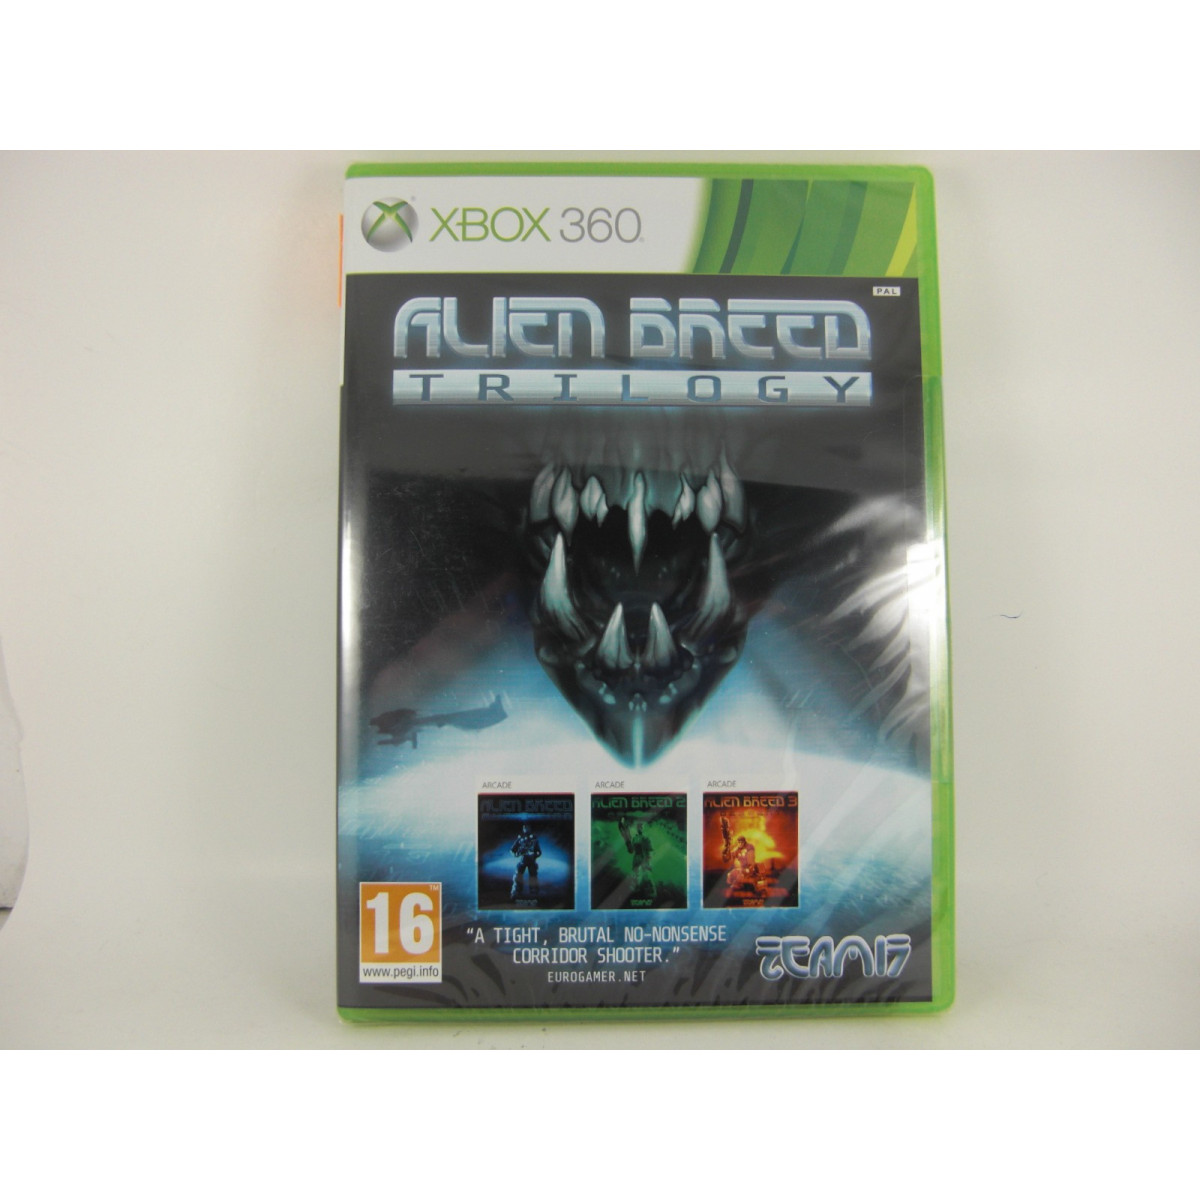 ofertas xbox 360 alien breed trilogy uk chollogames